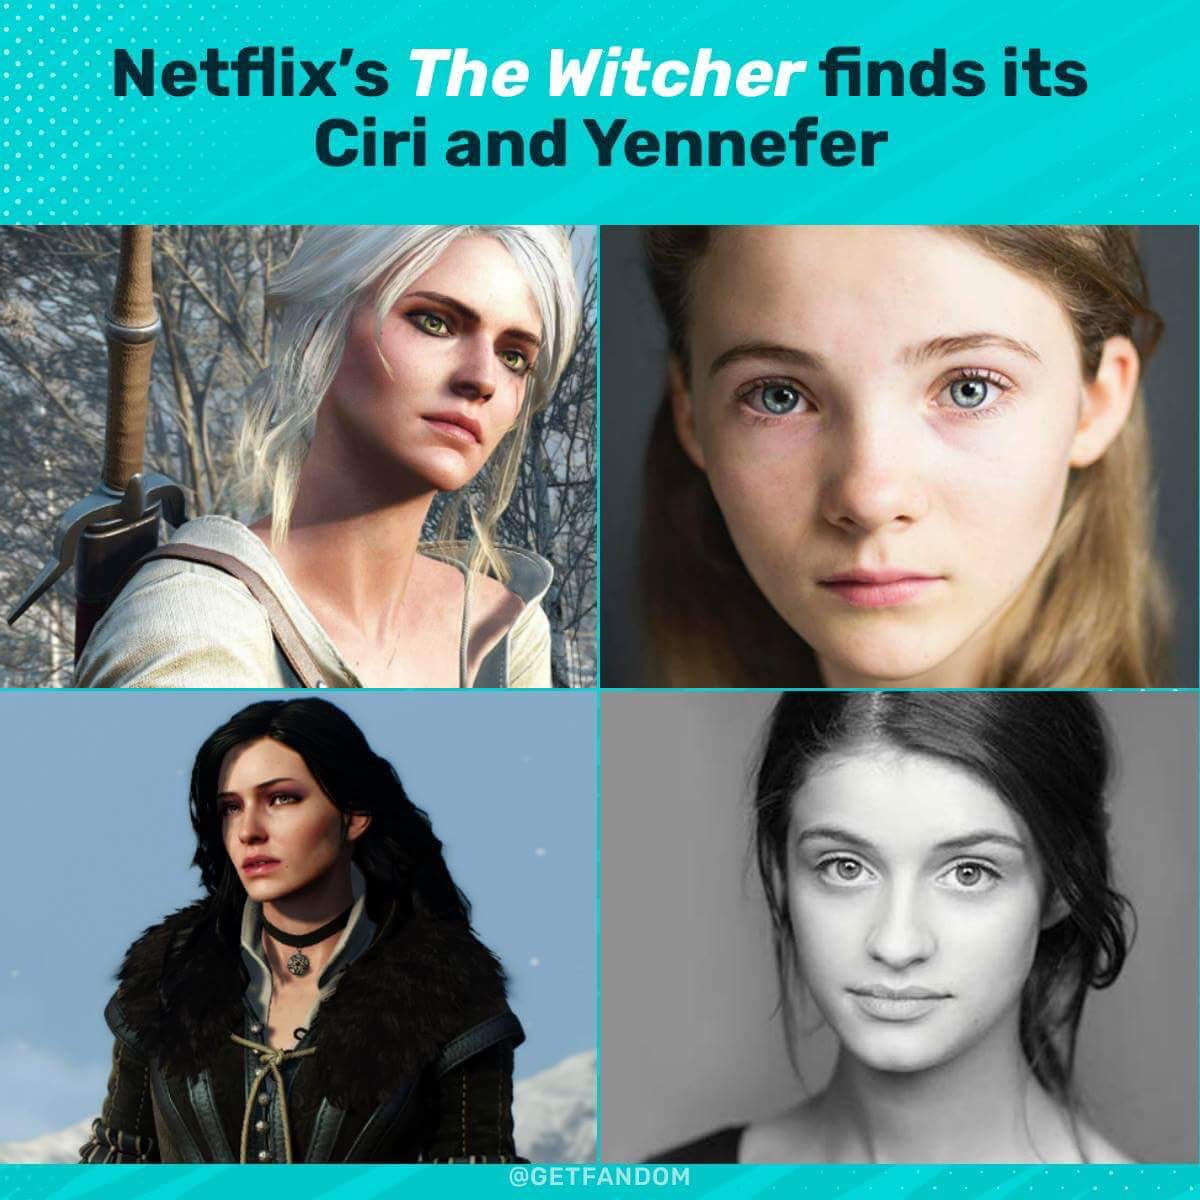 So Netflix's Witcher has found its Ciri and Yennefer! Freya Allan and Anya Chalotra. Thoughts??? #Witcher #Ciri #Yennefer<br>http://pic.twitter.com/pZ1NB0vFm1